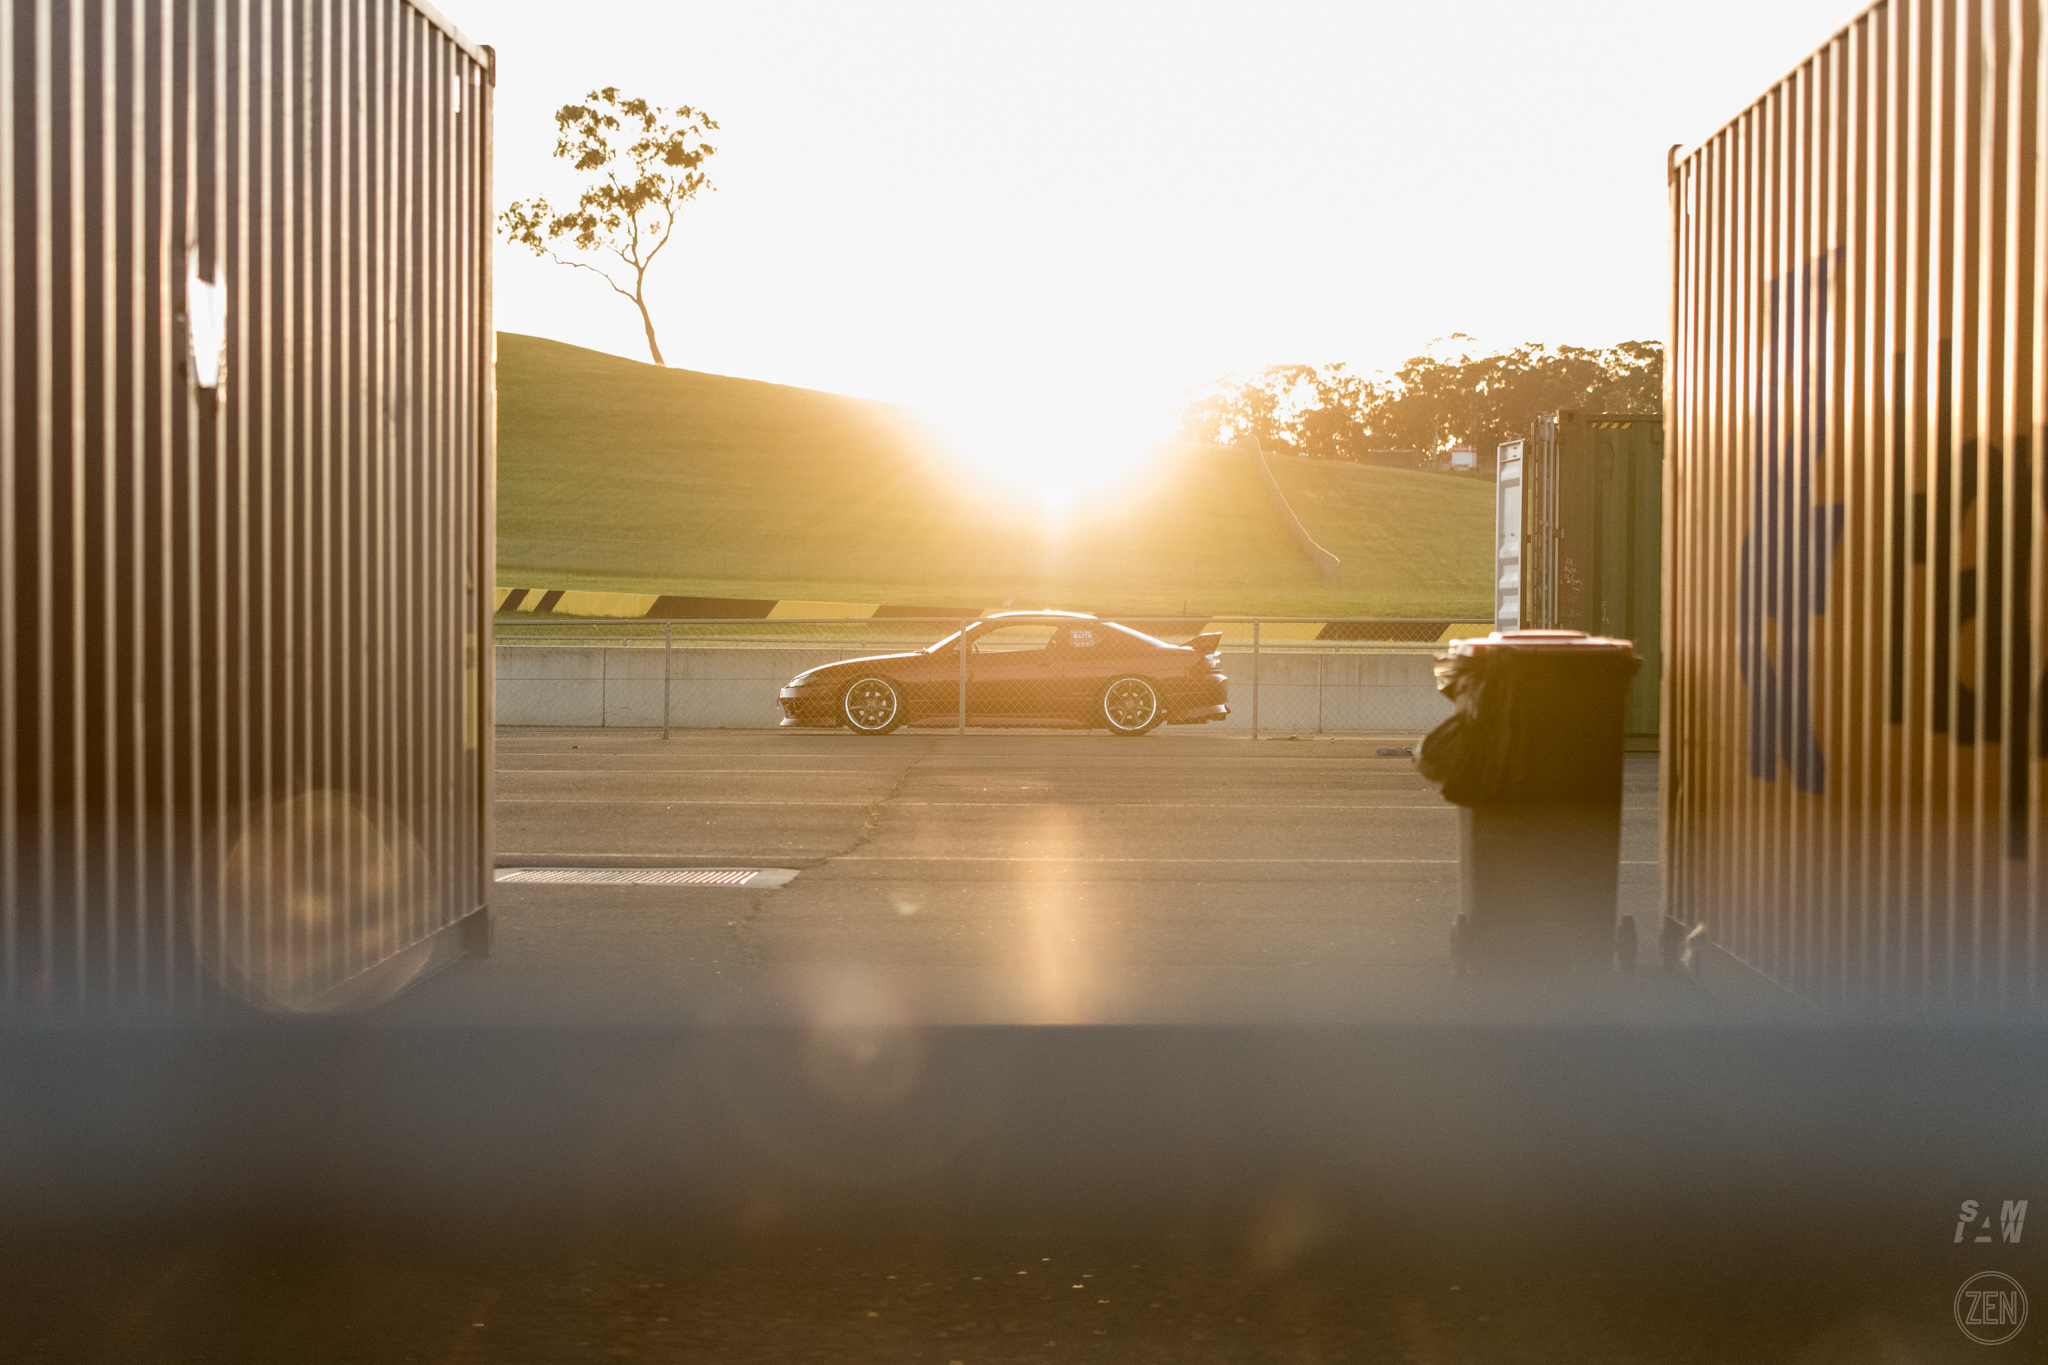 2019-10-19 - WTAC Day 2 071